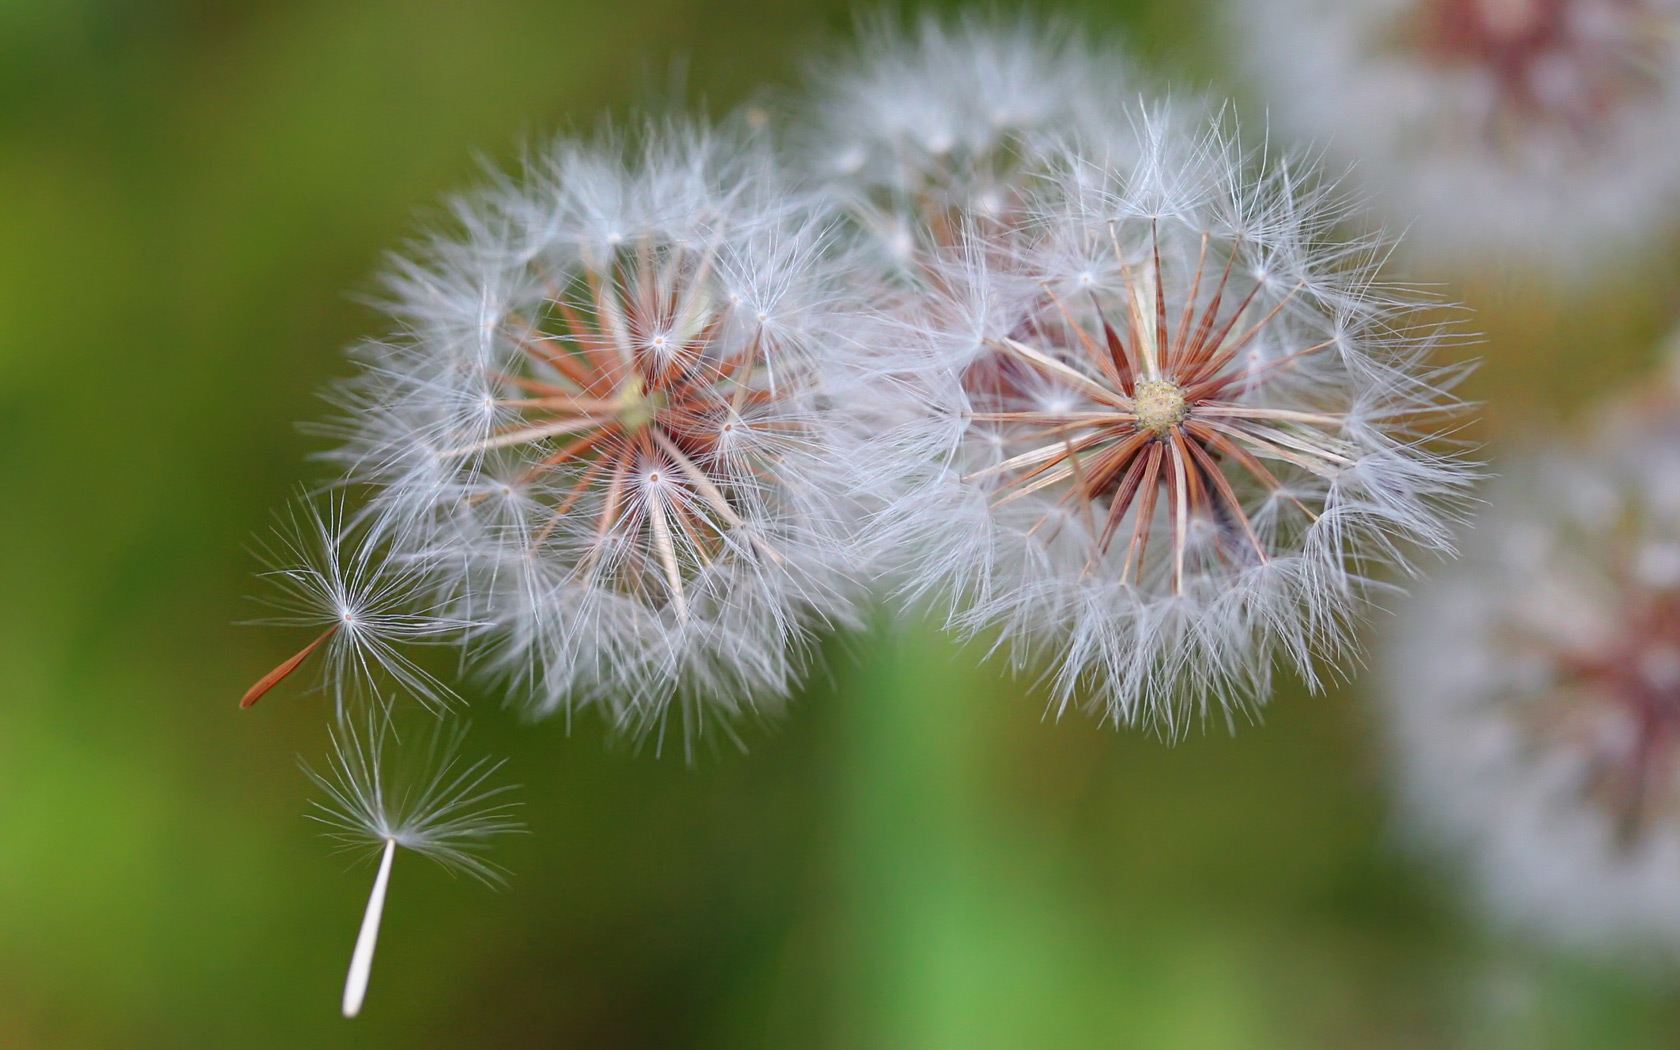 Dandelion Seeds Blowing in Wind   Wild Flower Background   1680x1050 1680x1050